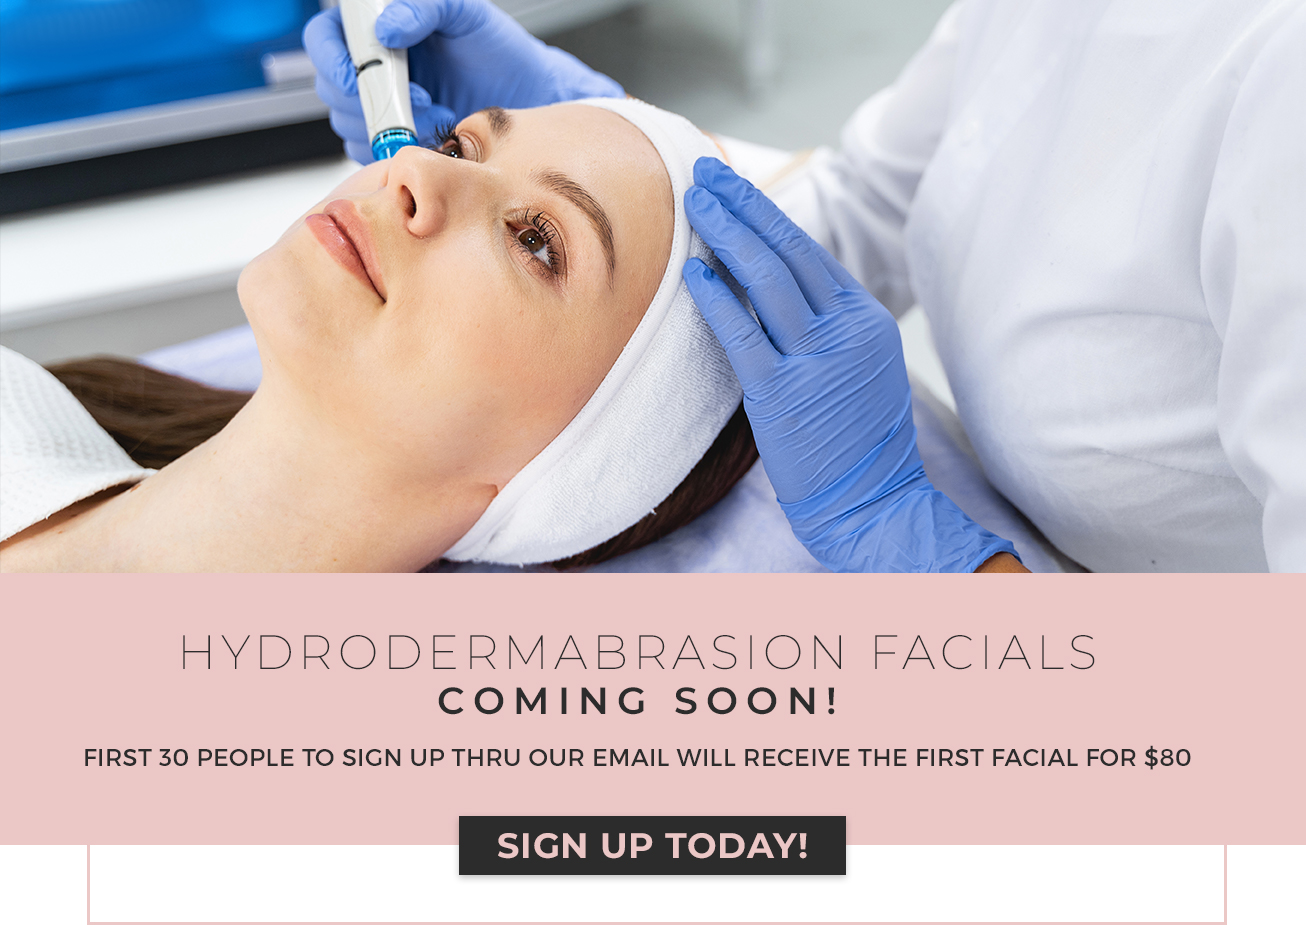 Hydrodermabrasion Facials Coming Soon! First 30 people to sign up thru our email will receive the first facial for $80